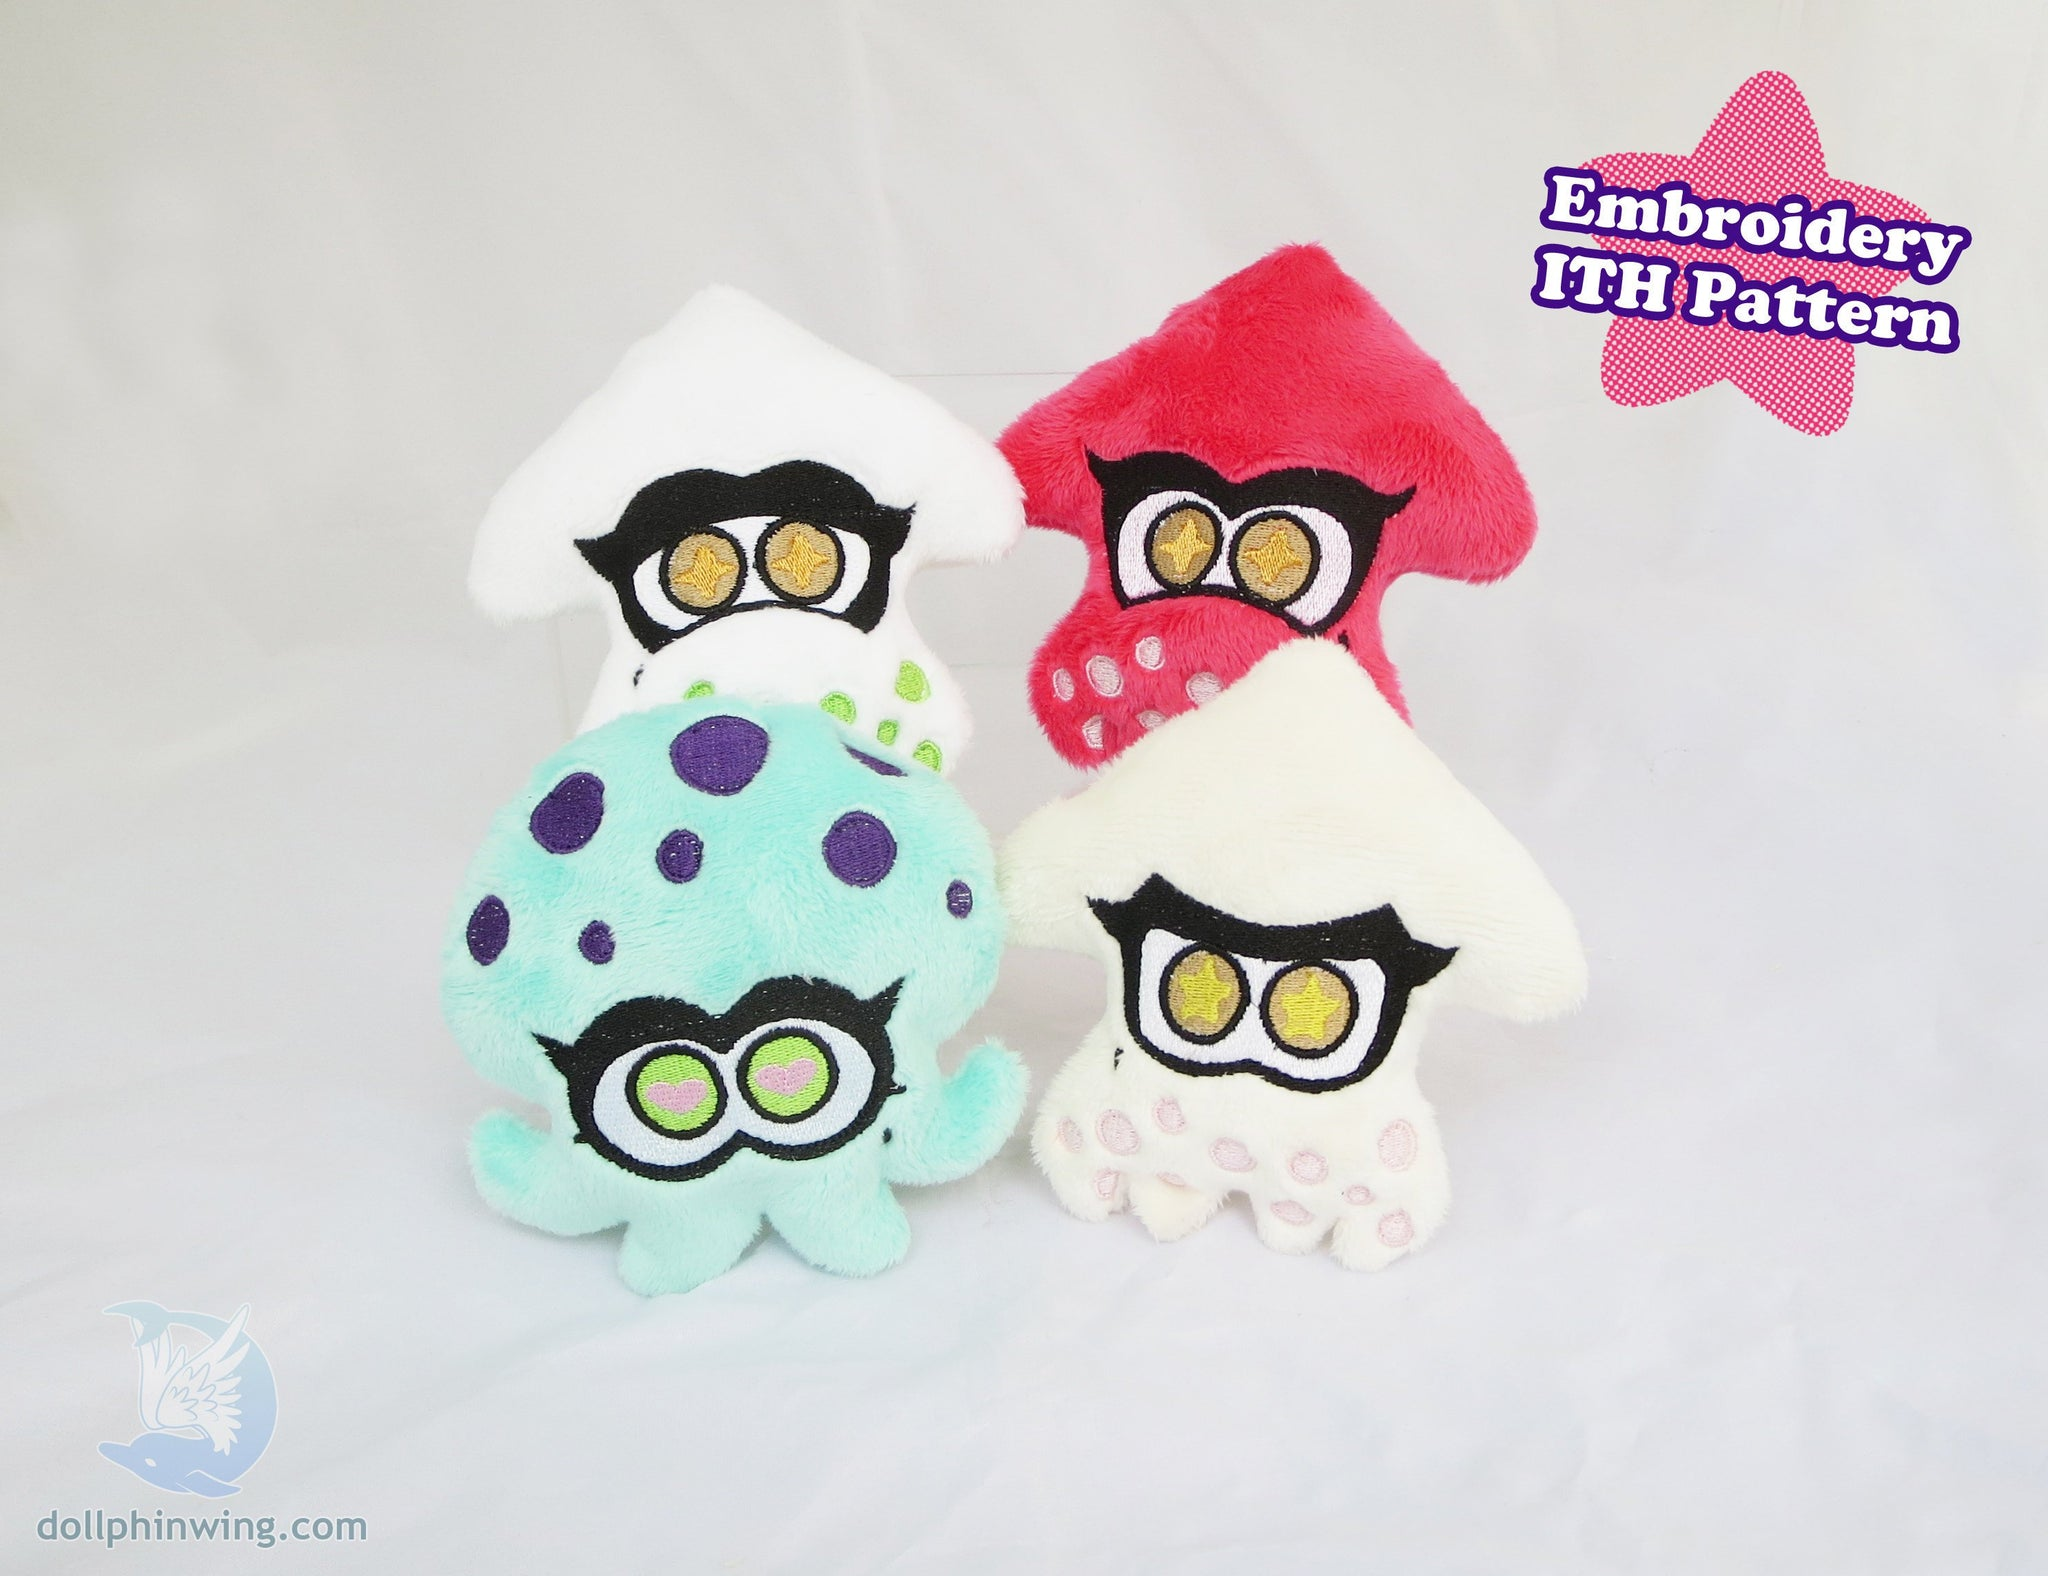 Lil Squids and Octopus Friends Bundle Pack Embroidery